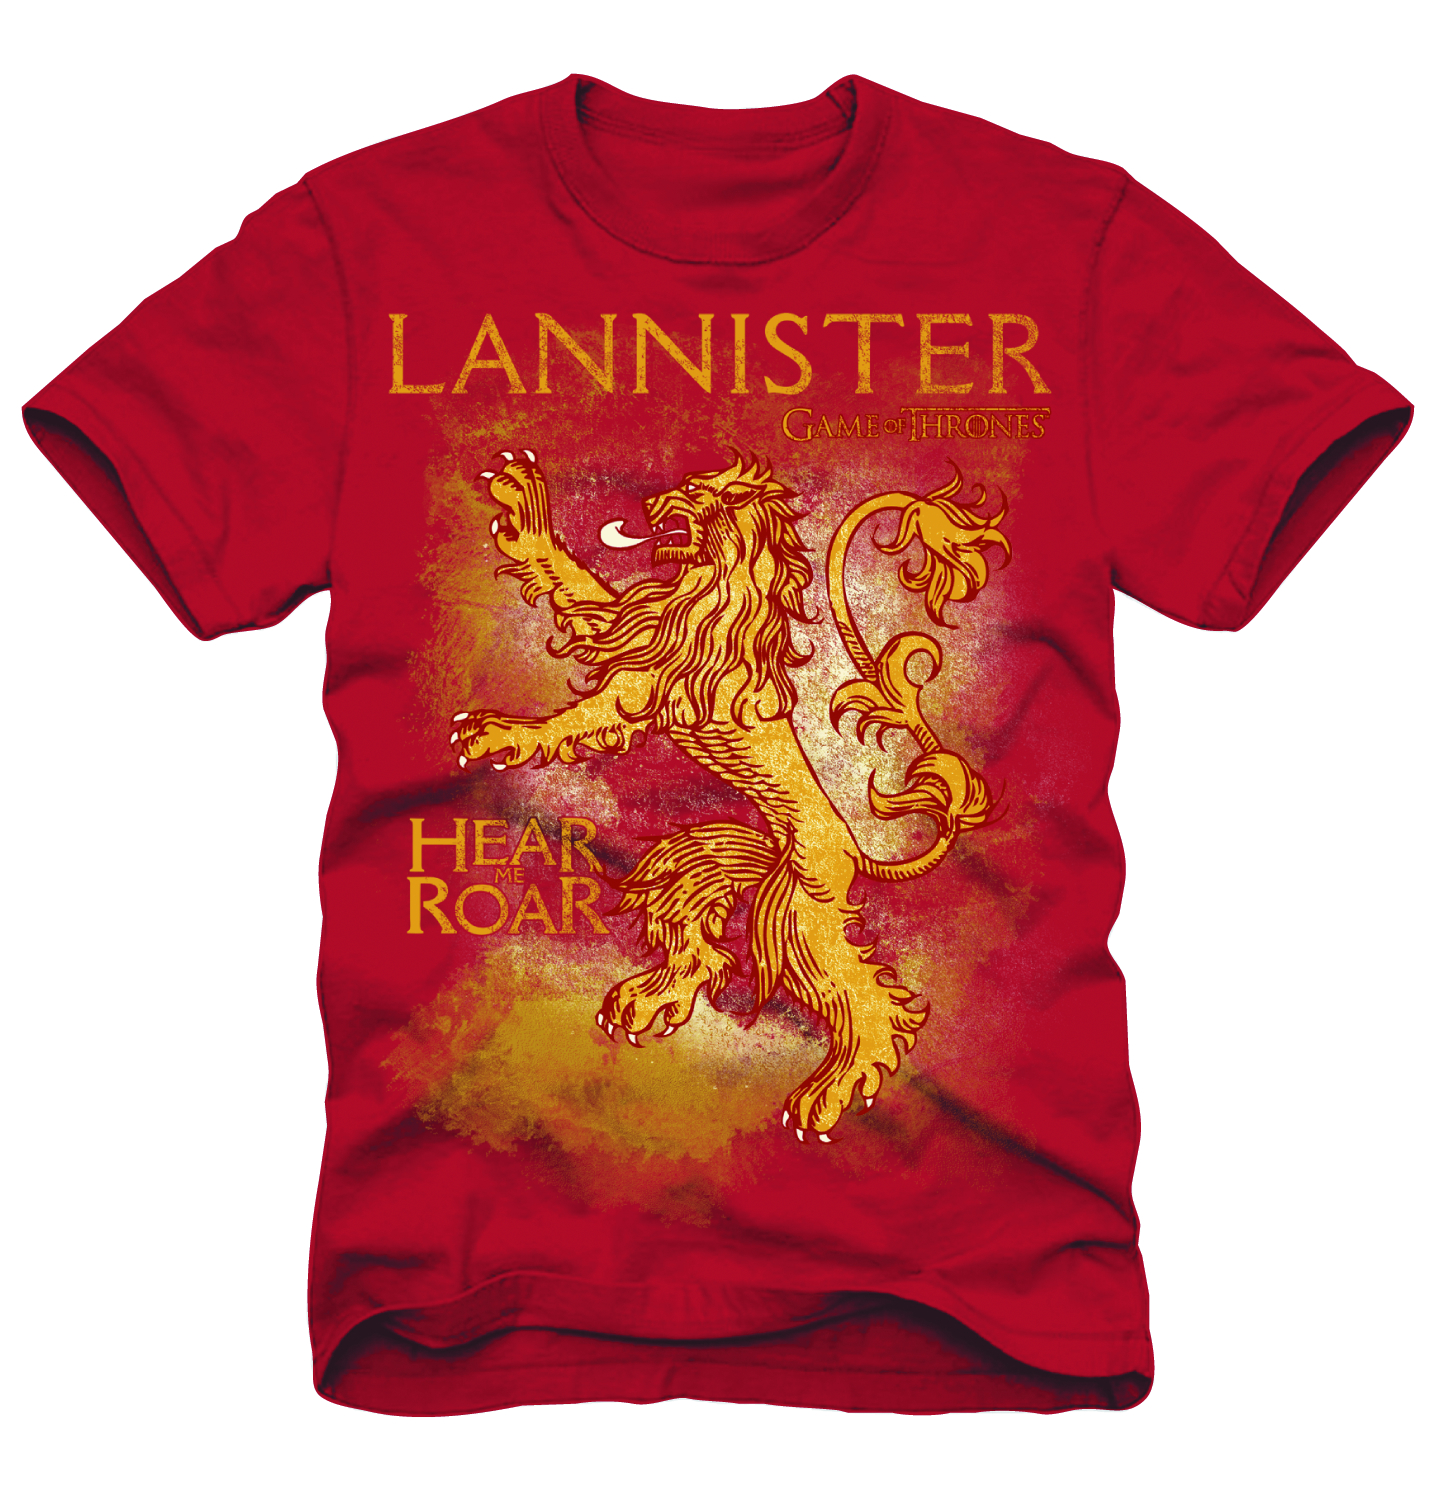 GAME OF THRONES LANNISTER RED T/S XL